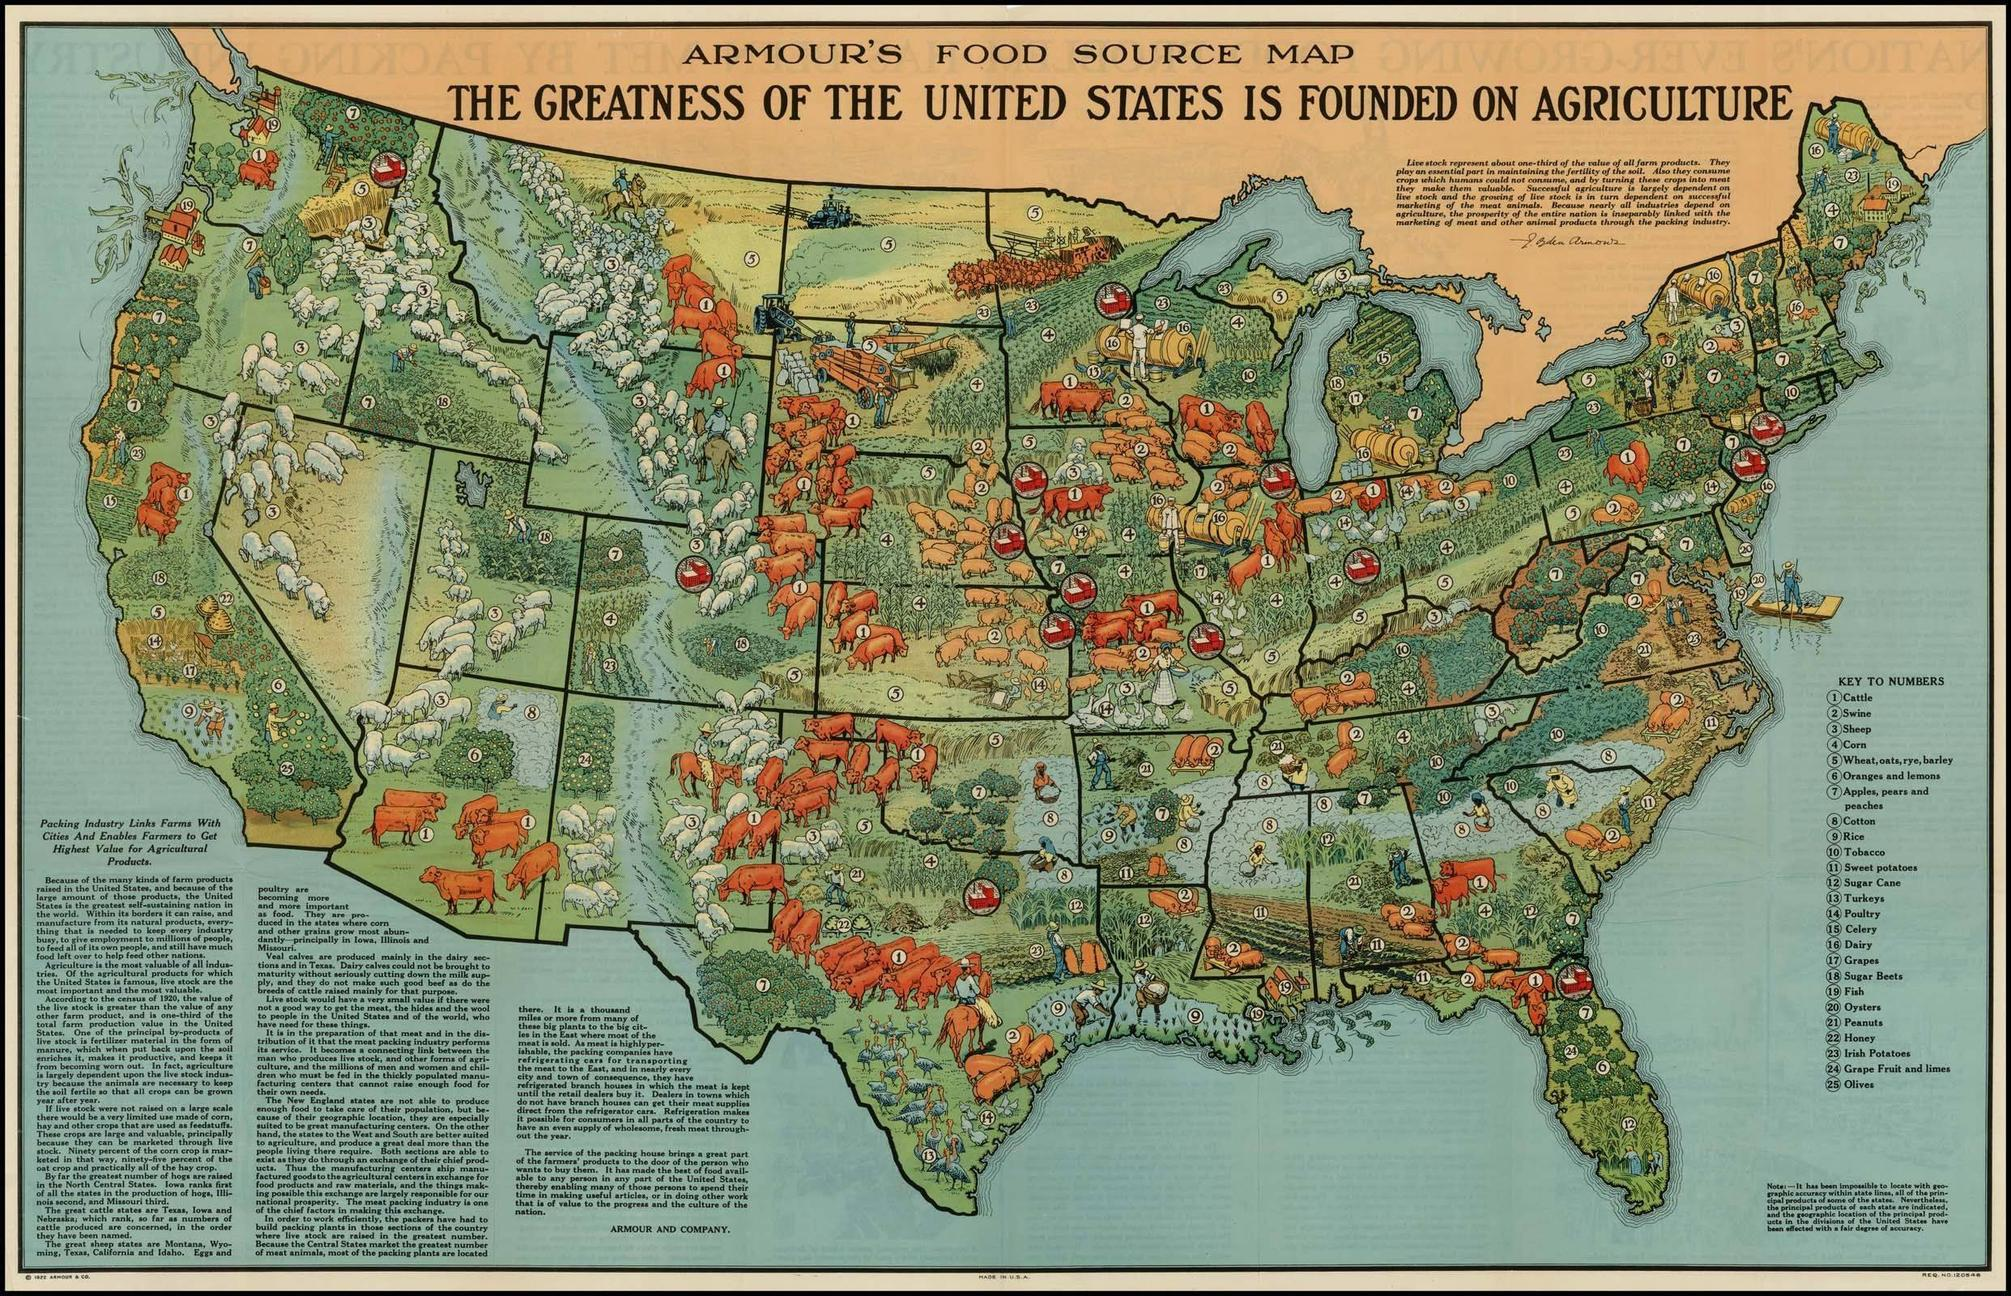 40 maps that explain food in America   Vox com